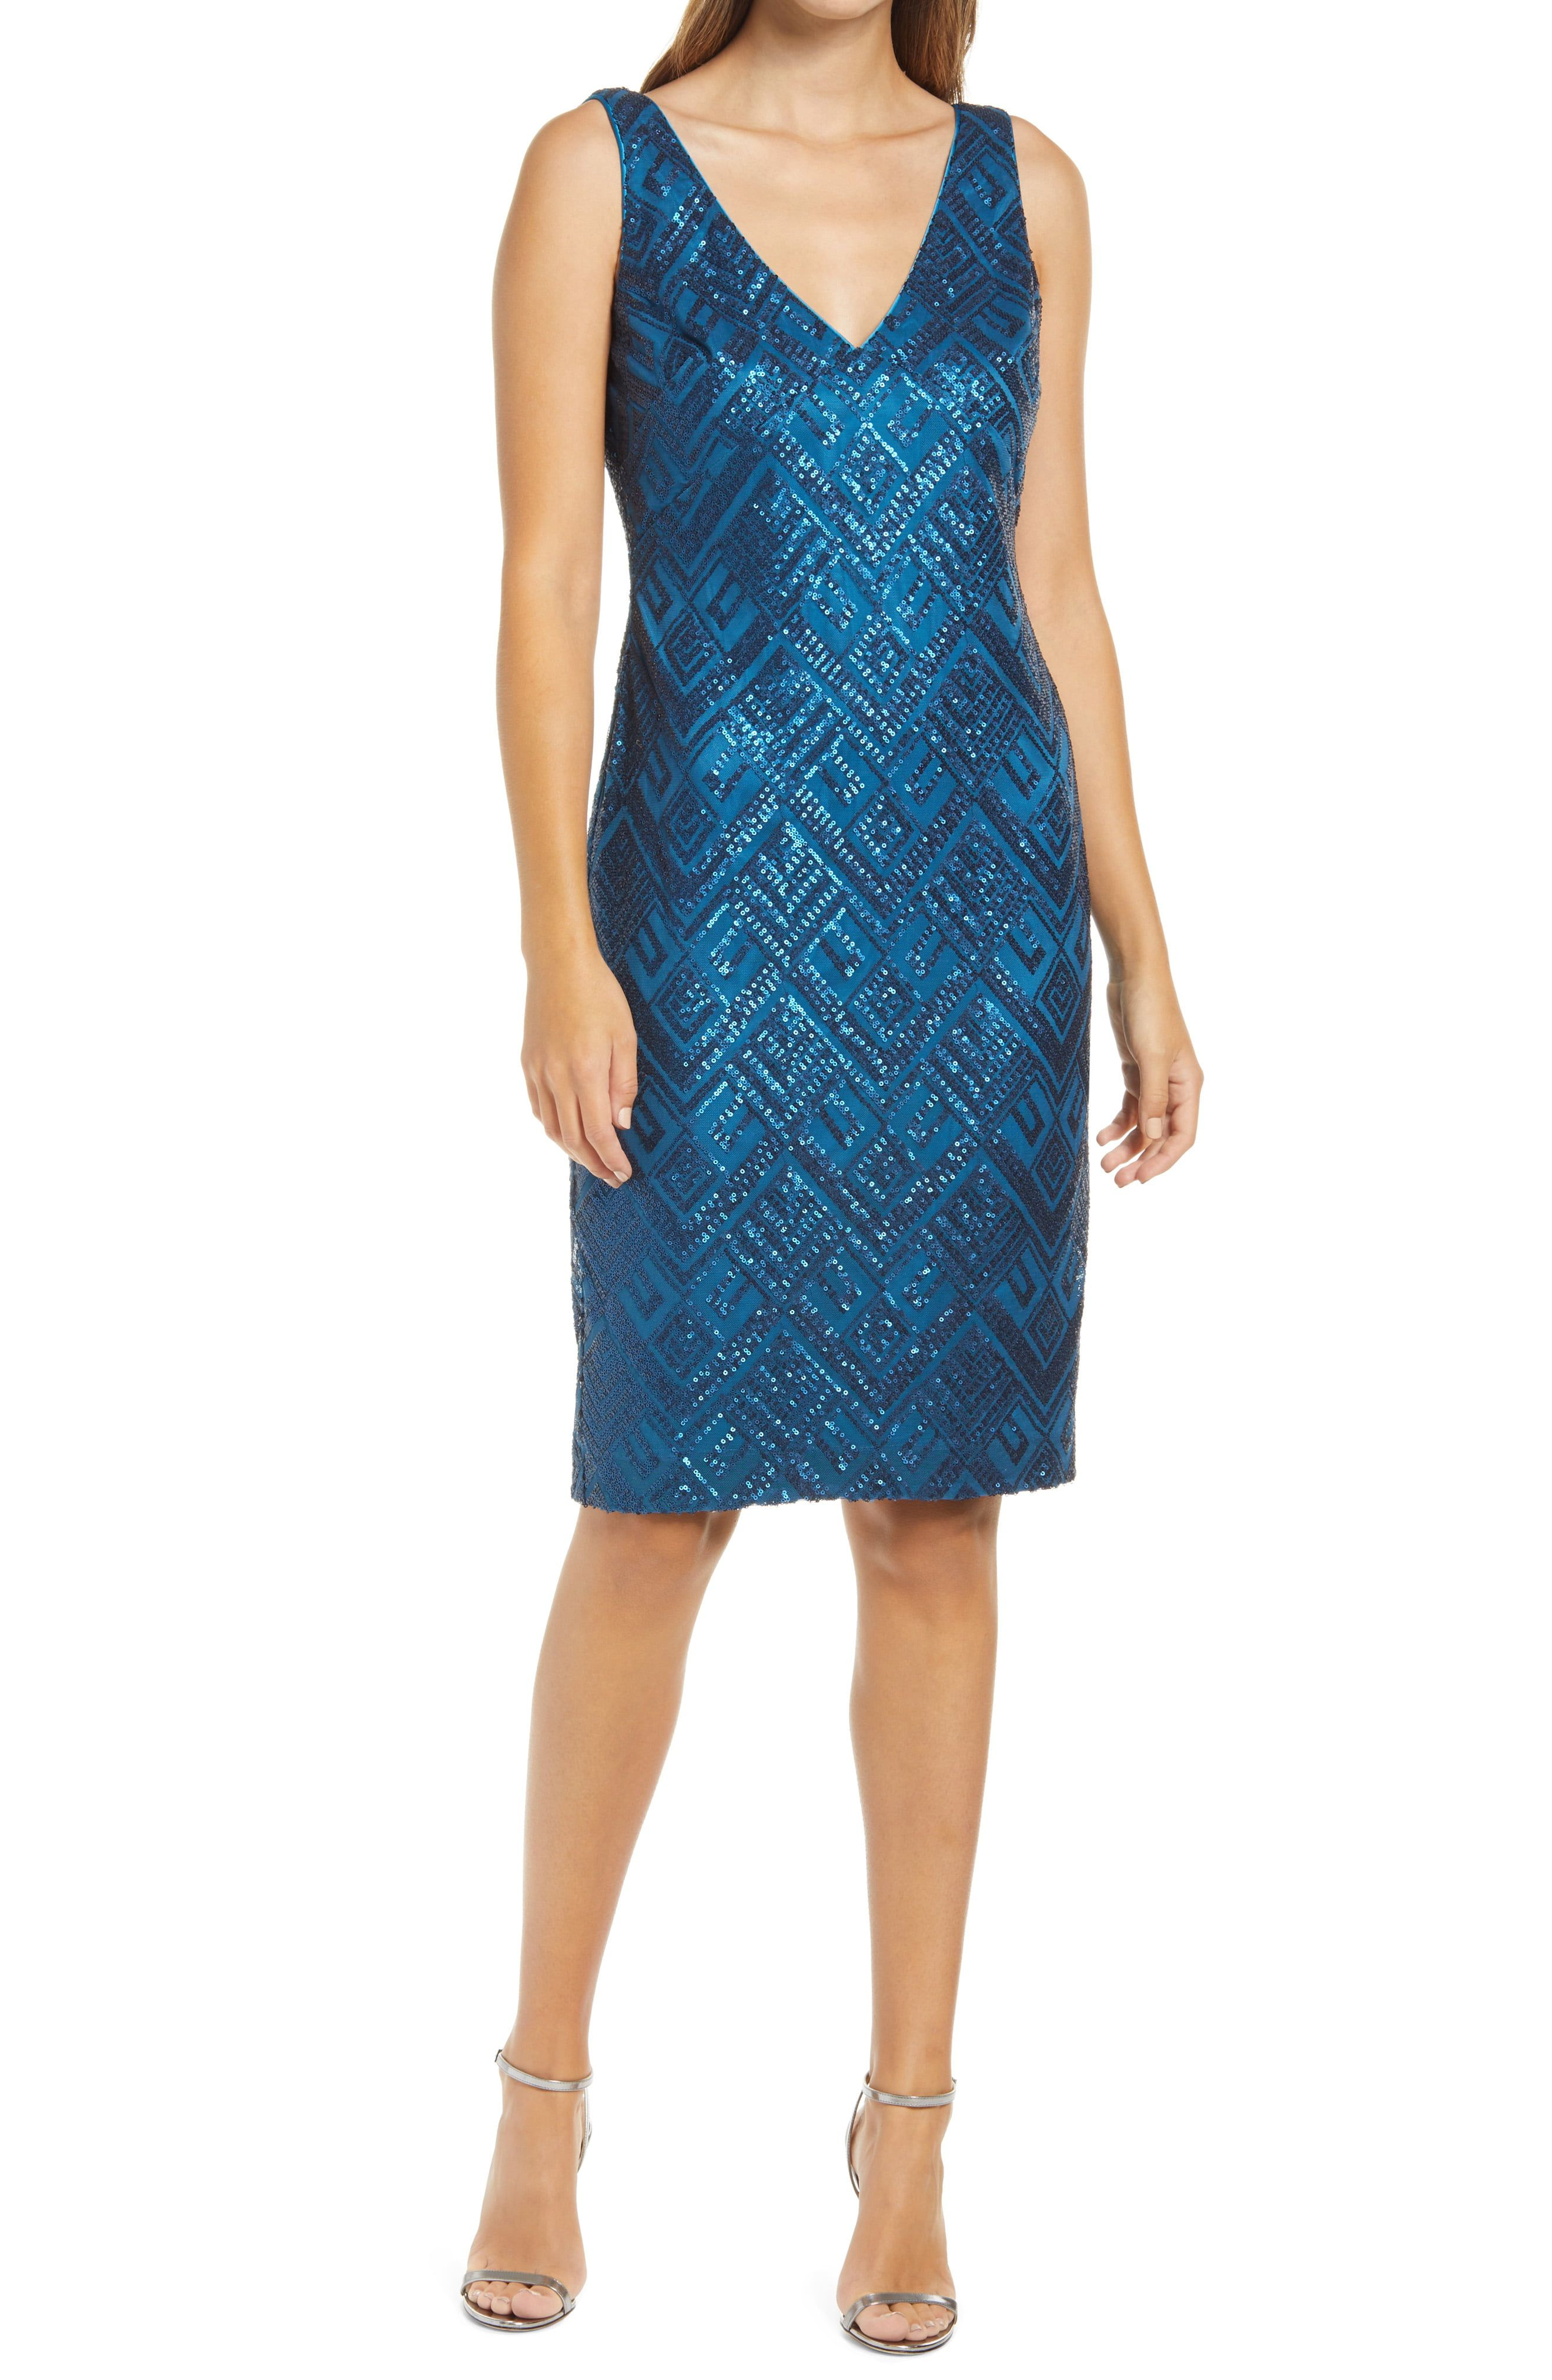 Vince Camuto Sequin Sleeveless Sheath Cocktail Dress Nordstrom In 2021 Cocktail Dress Nordstrom Dresses 1920 Outfits [ 4048 x 2640 Pixel ]